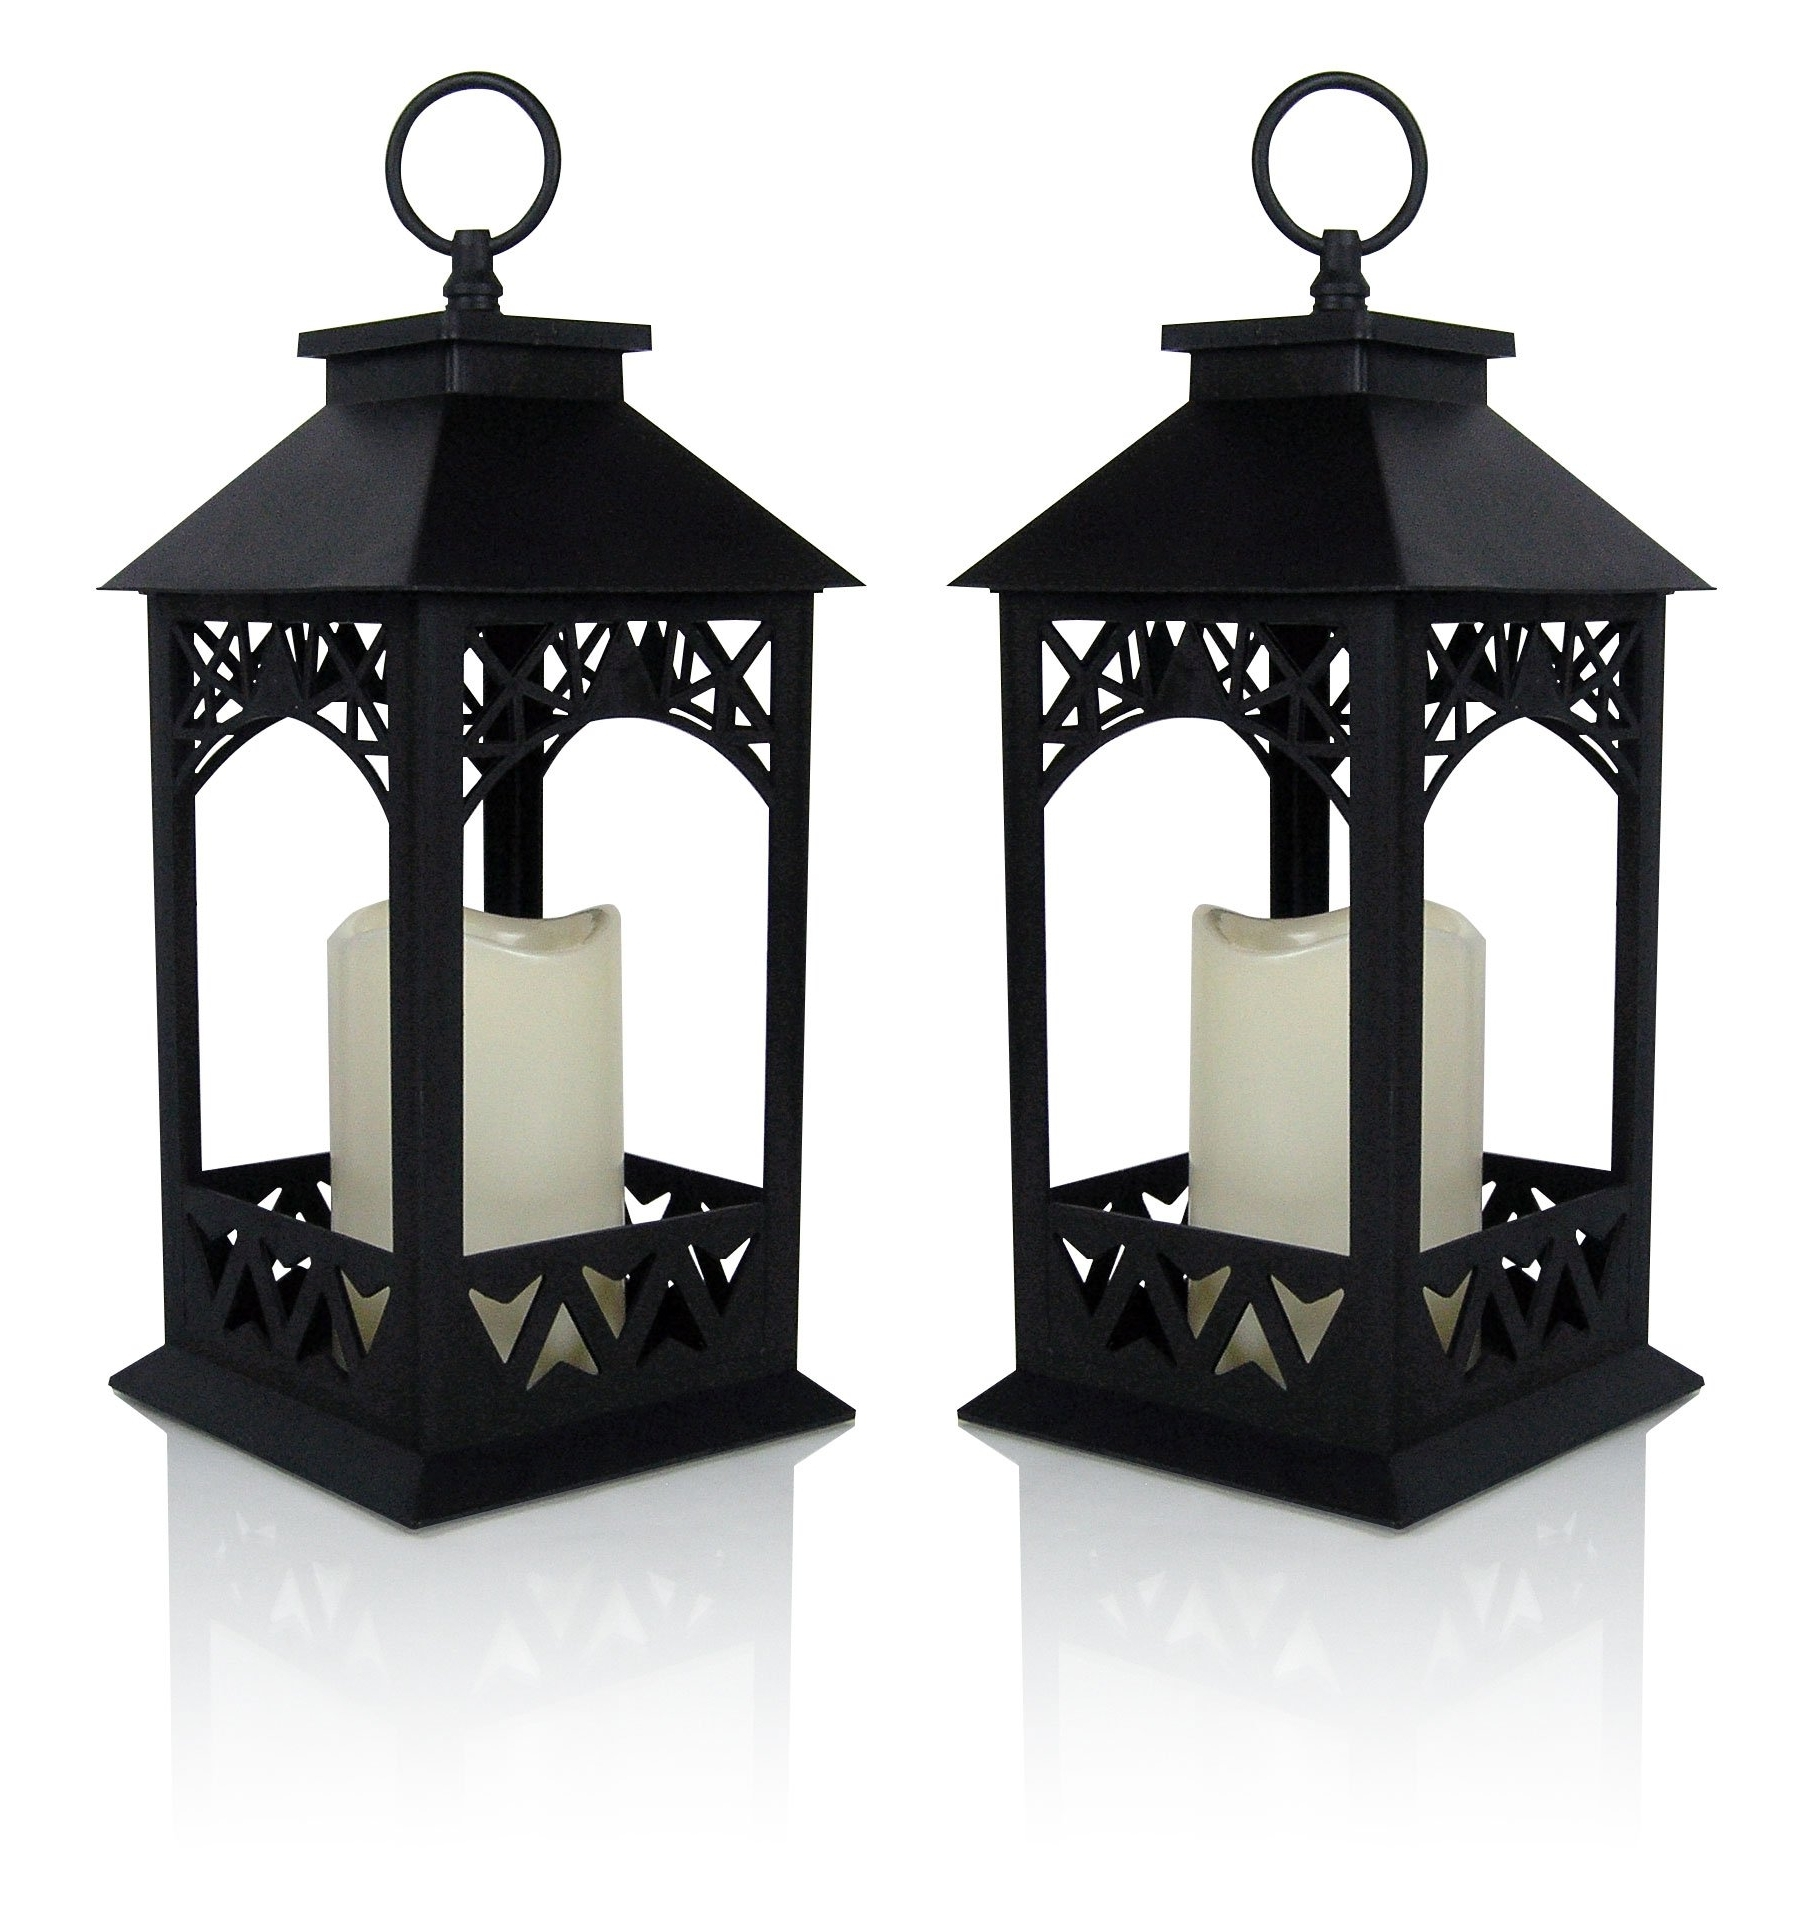 Famous Outdoor Lanterns With Flameless Candles Regarding Cheap Outdoor Lanterns Candle, Find Outdoor Lanterns Candle Deals On (View 4 of 20)